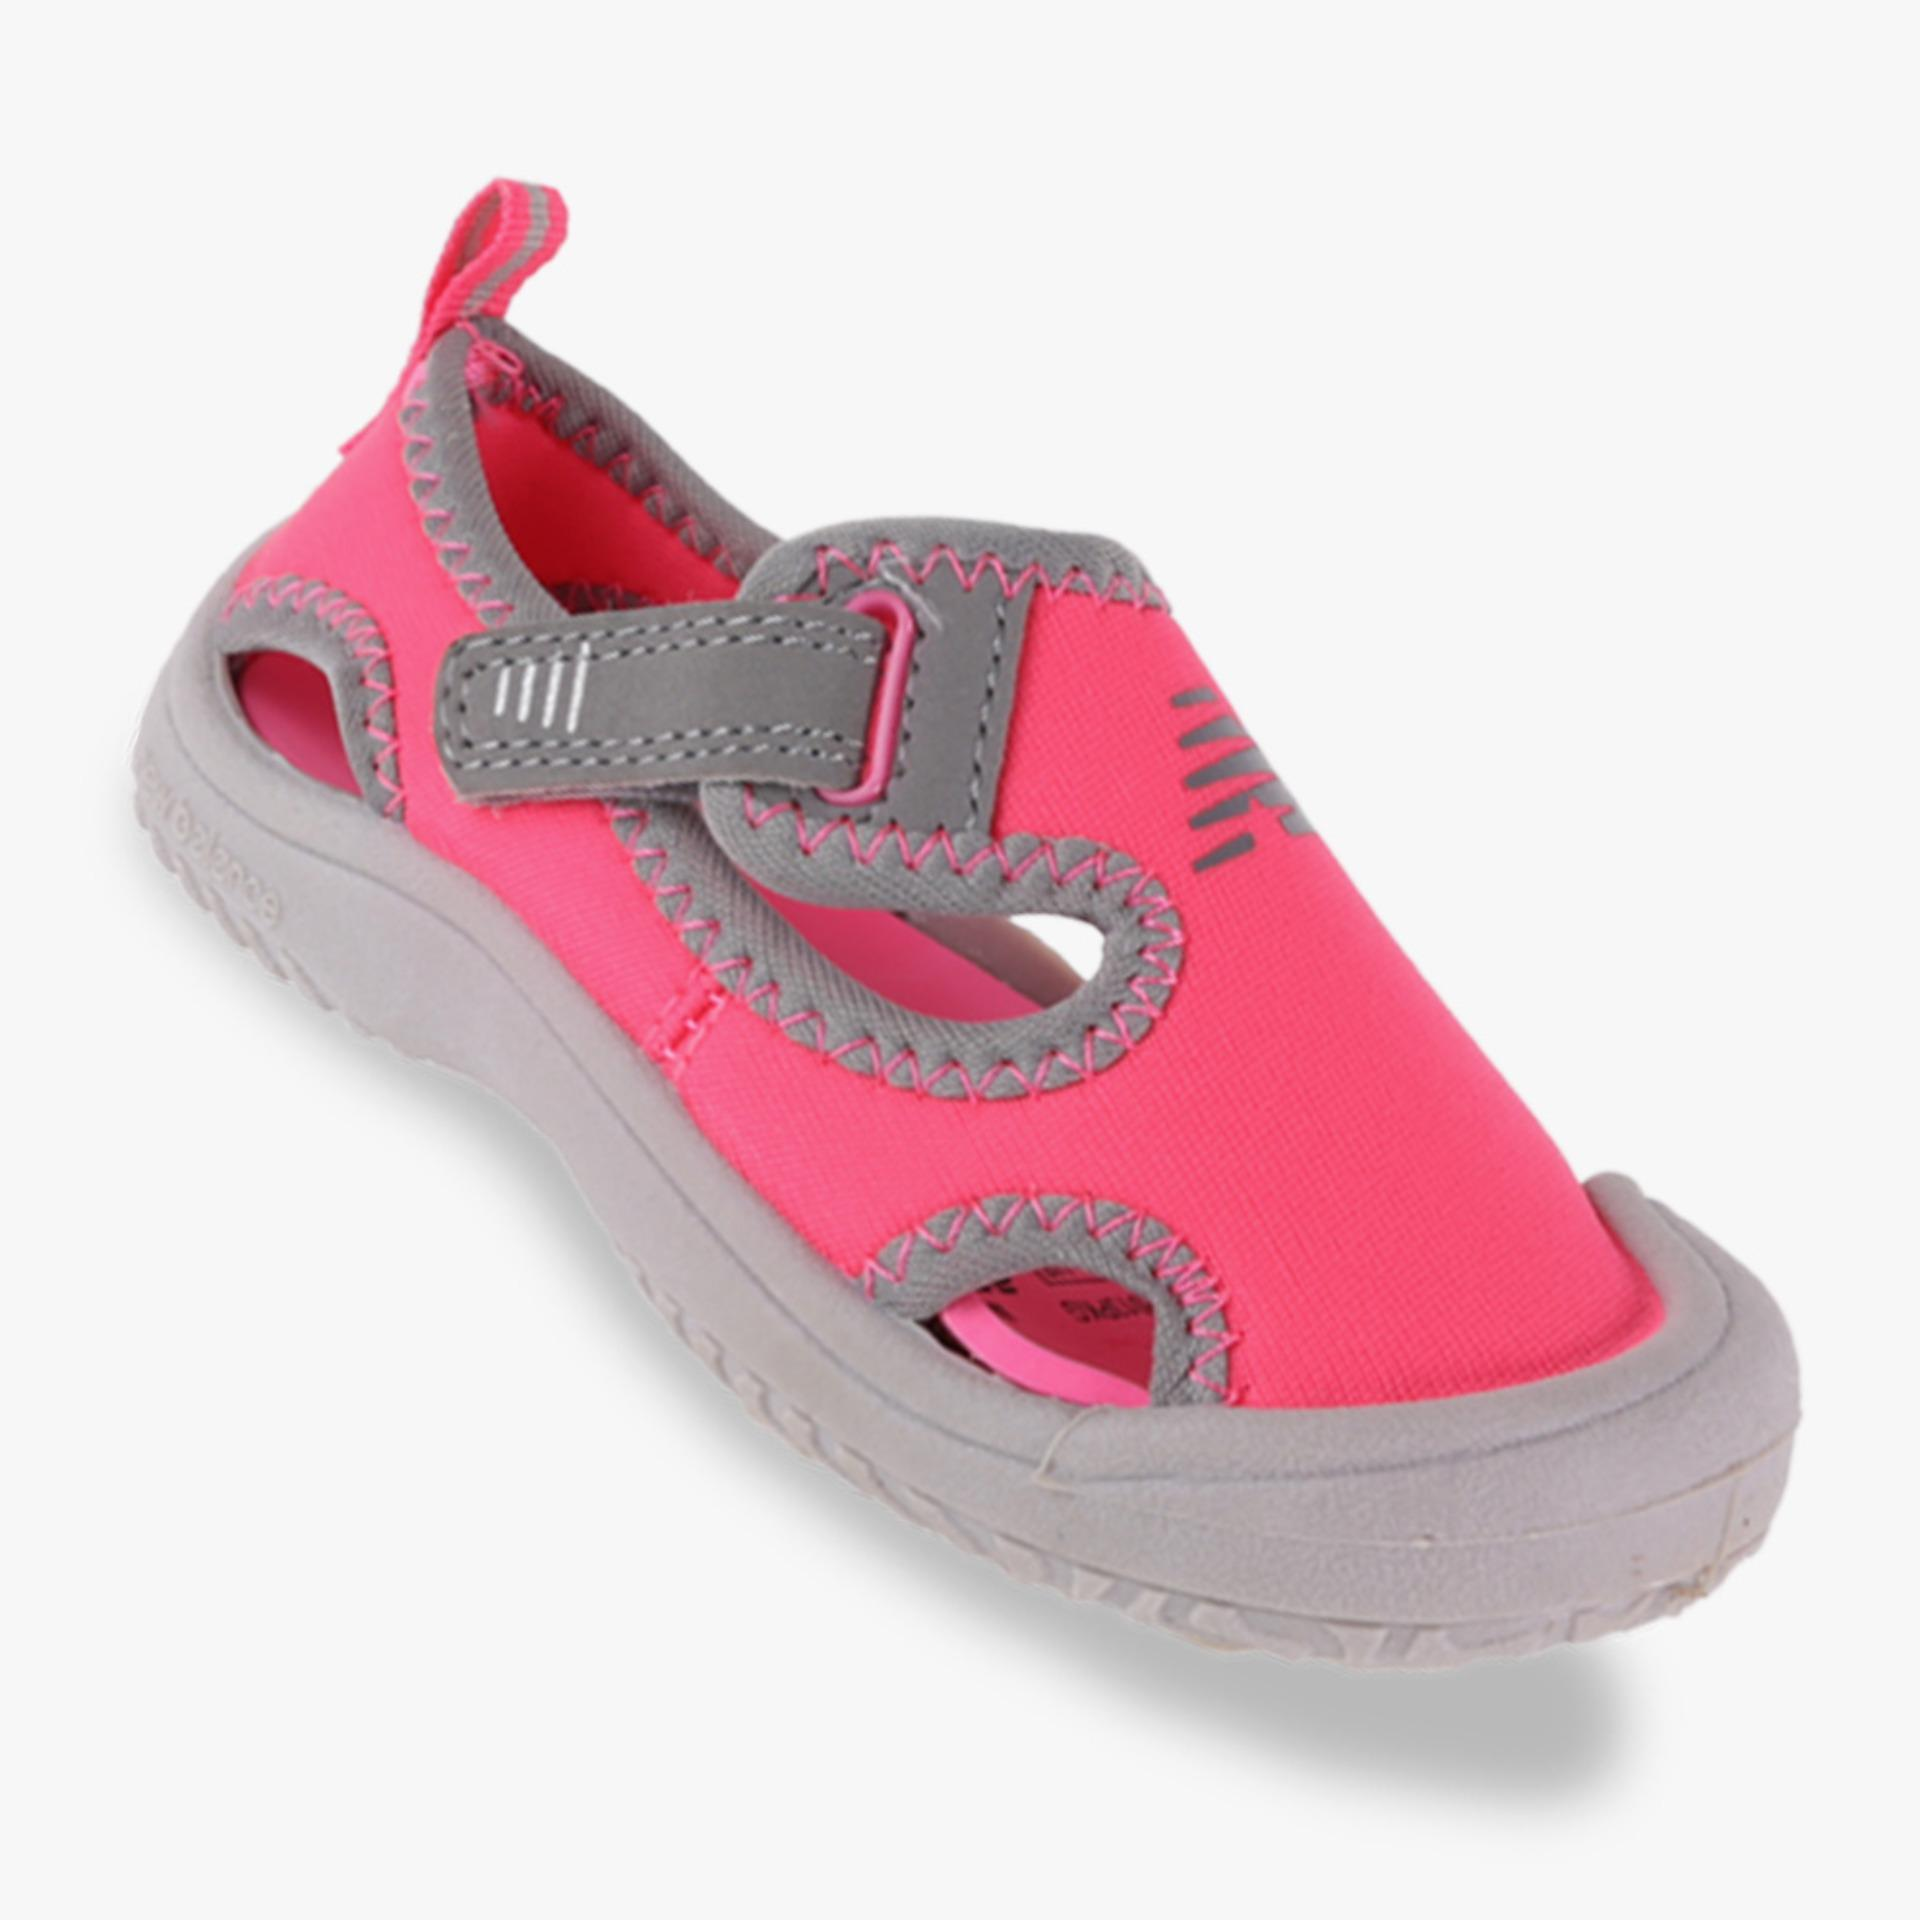 New Balance Girl s Sandals - Pink ff05f4675b